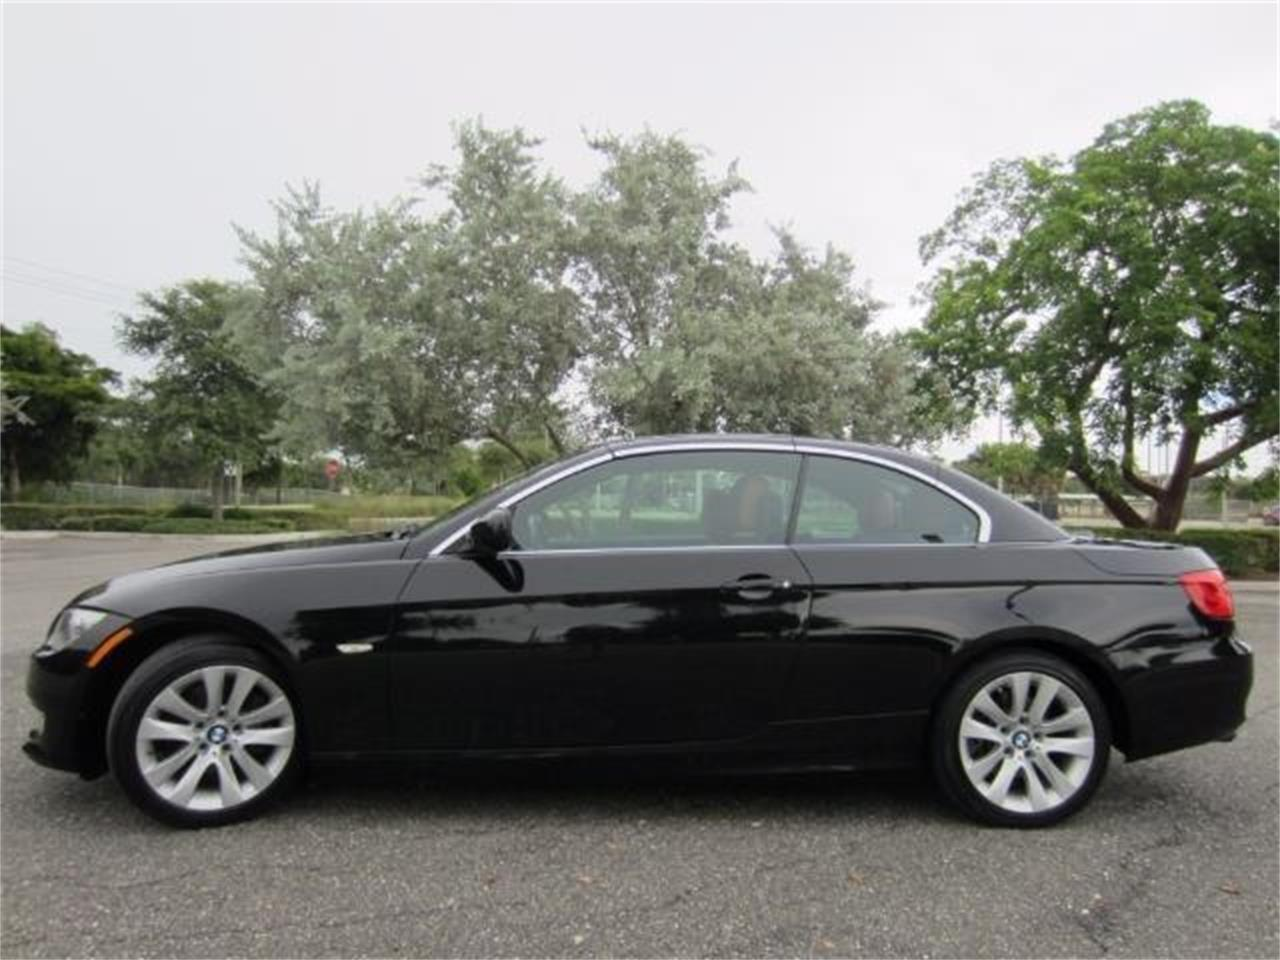 2011 BMW 328i for sale in Delray Beach, FL – photo 23